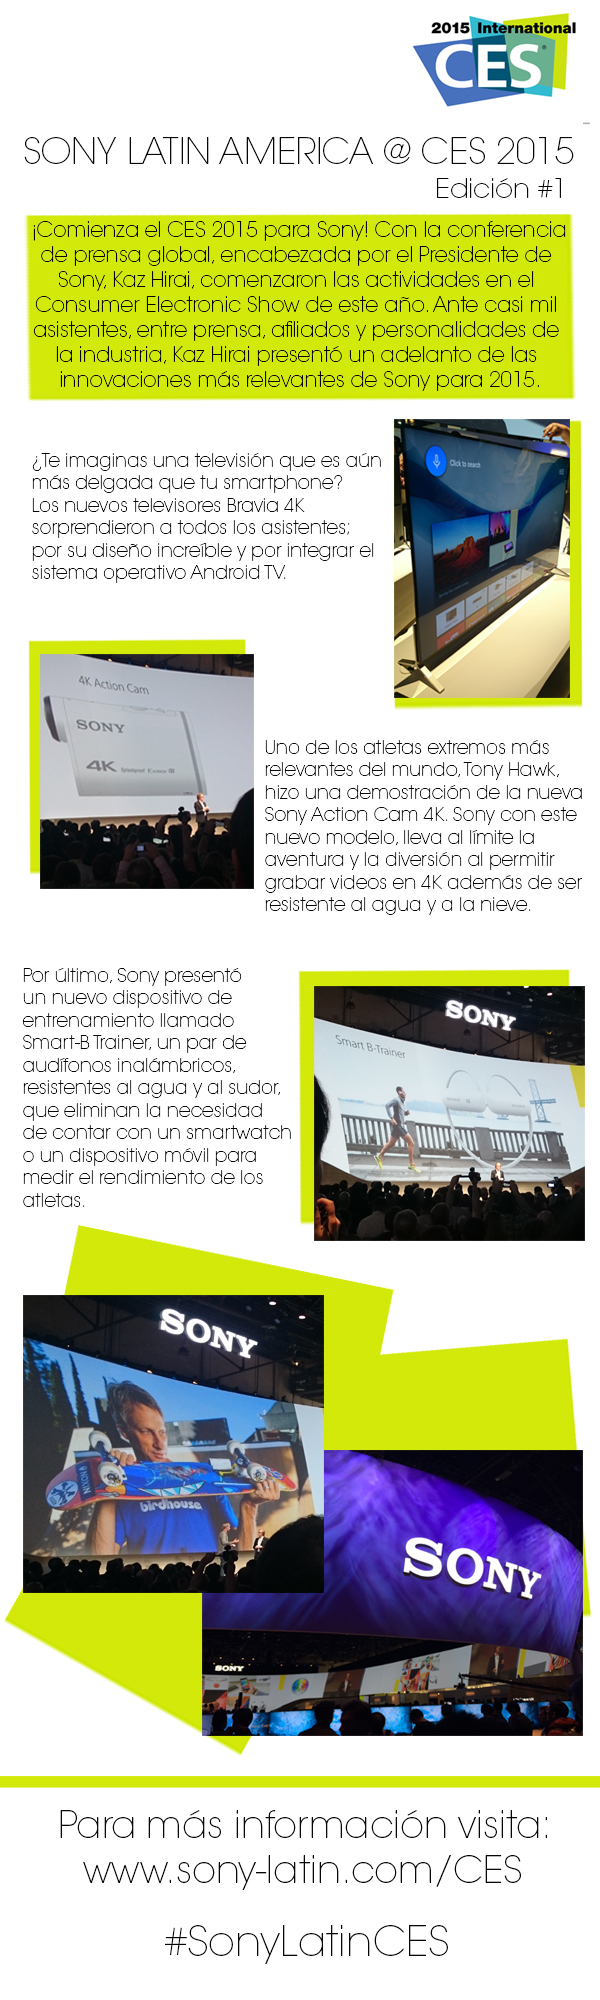 SonyLatin CES infrographic DAY1